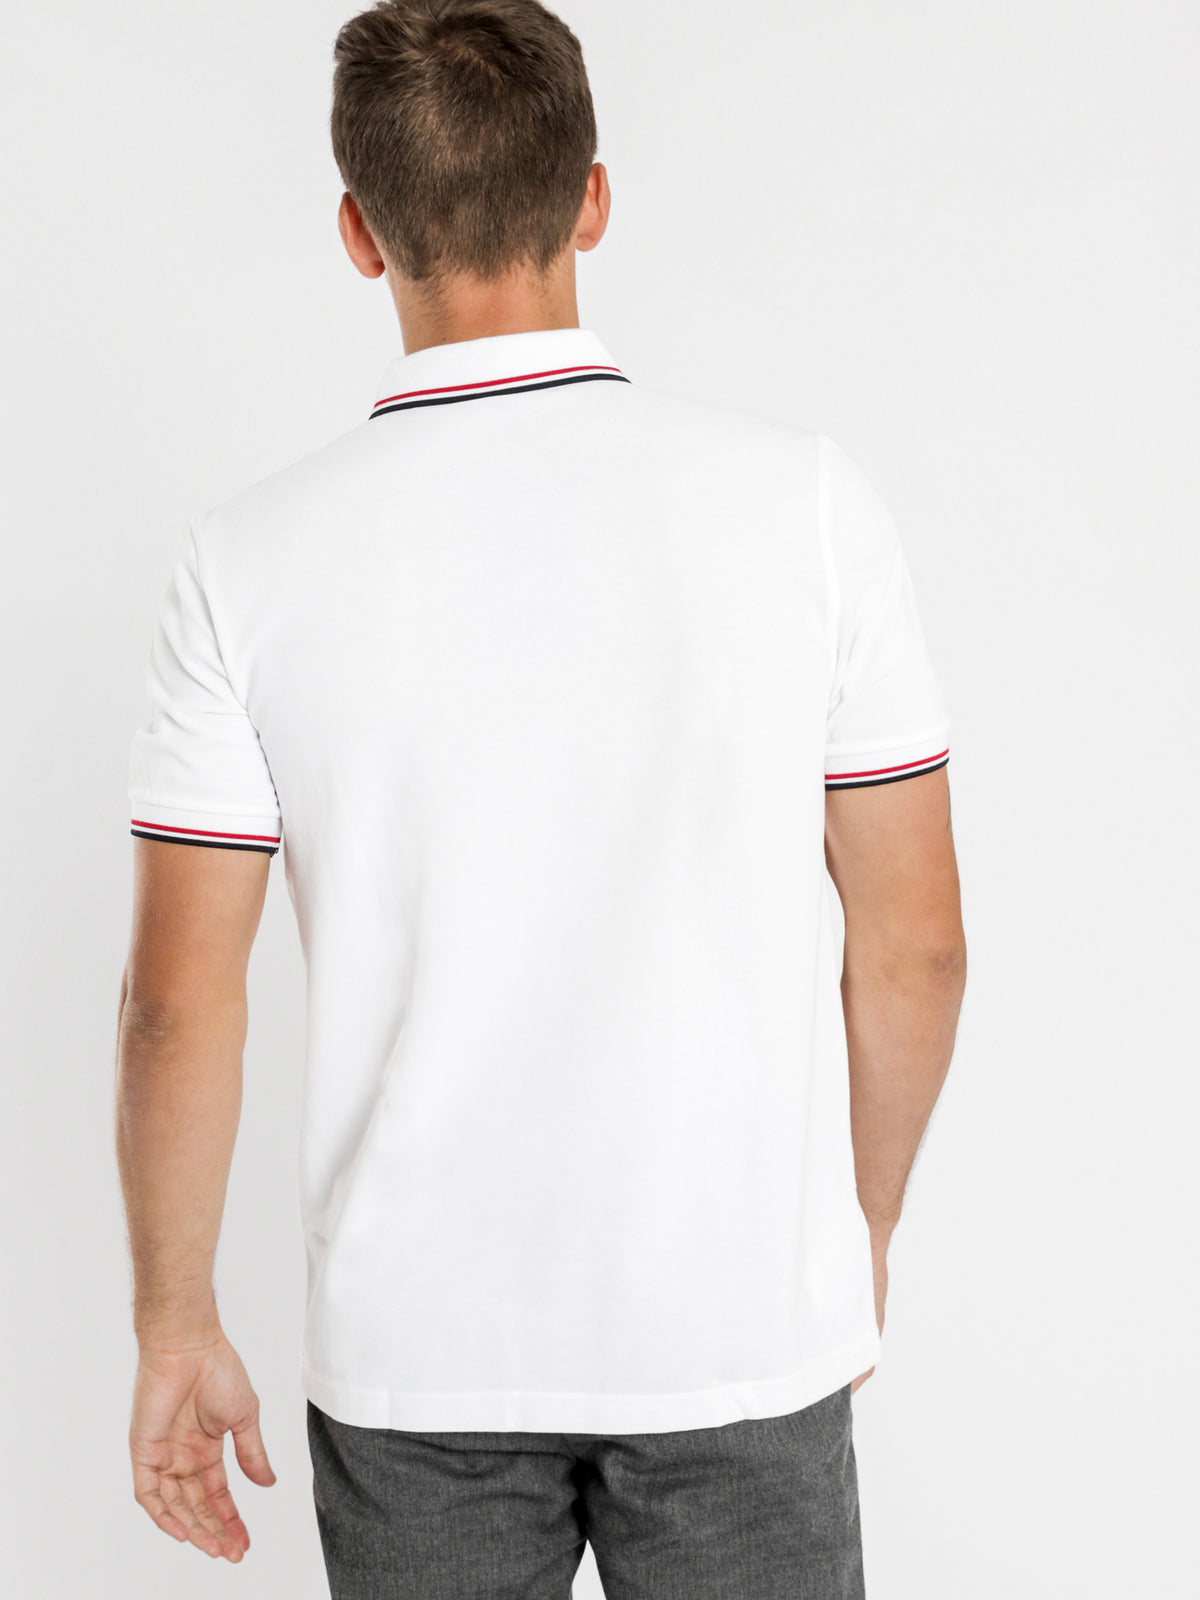 Twin Tipped Polo Shirt in White Red & Navy